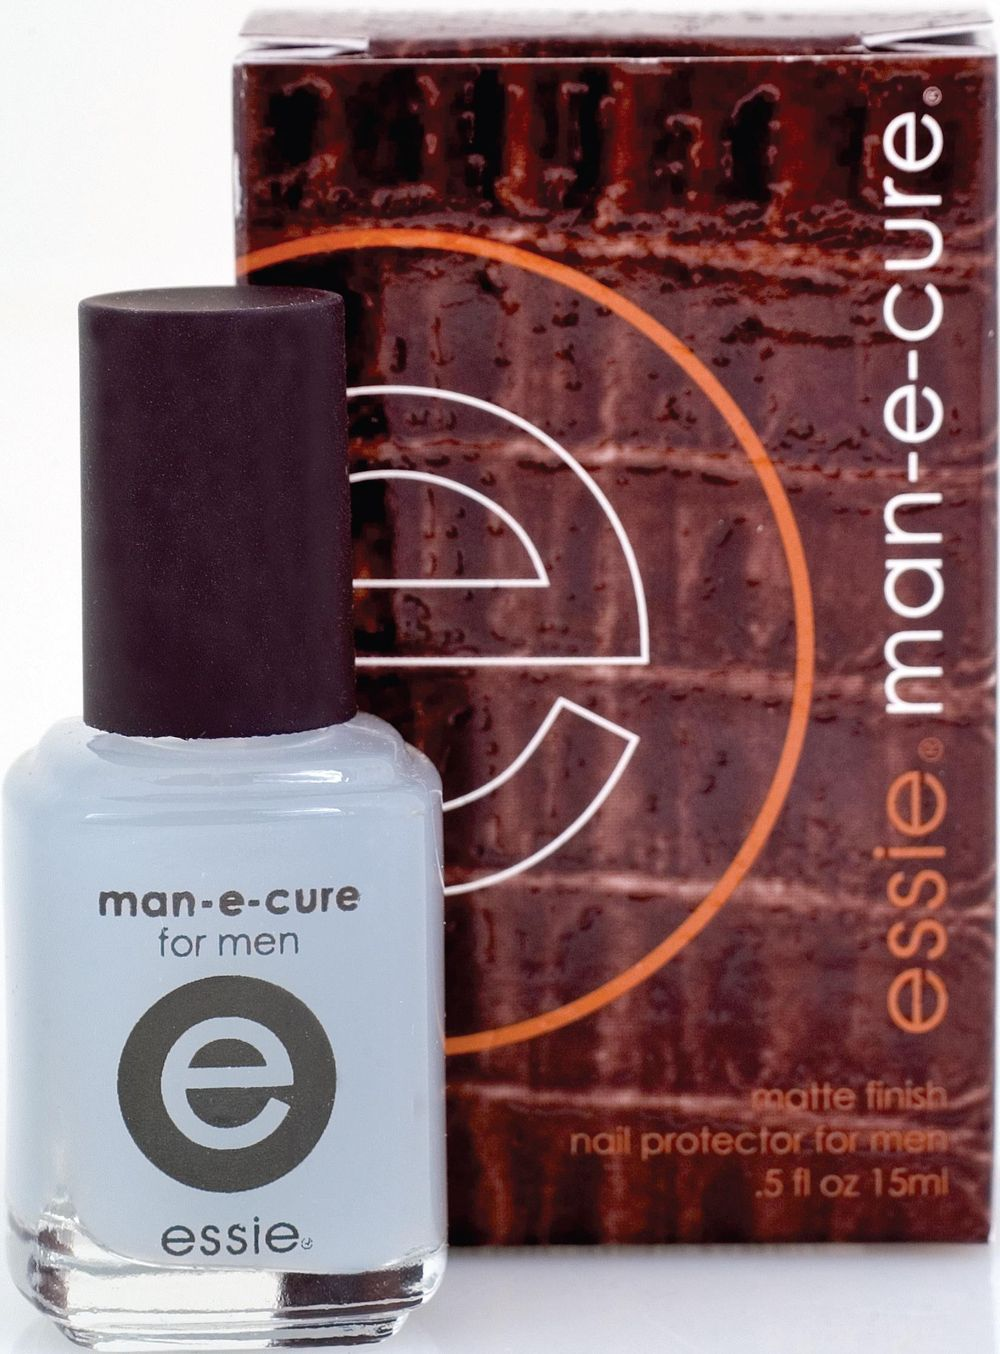 <p><strong>Essie Cosmetics:</strong> Man-E-Cure</p>